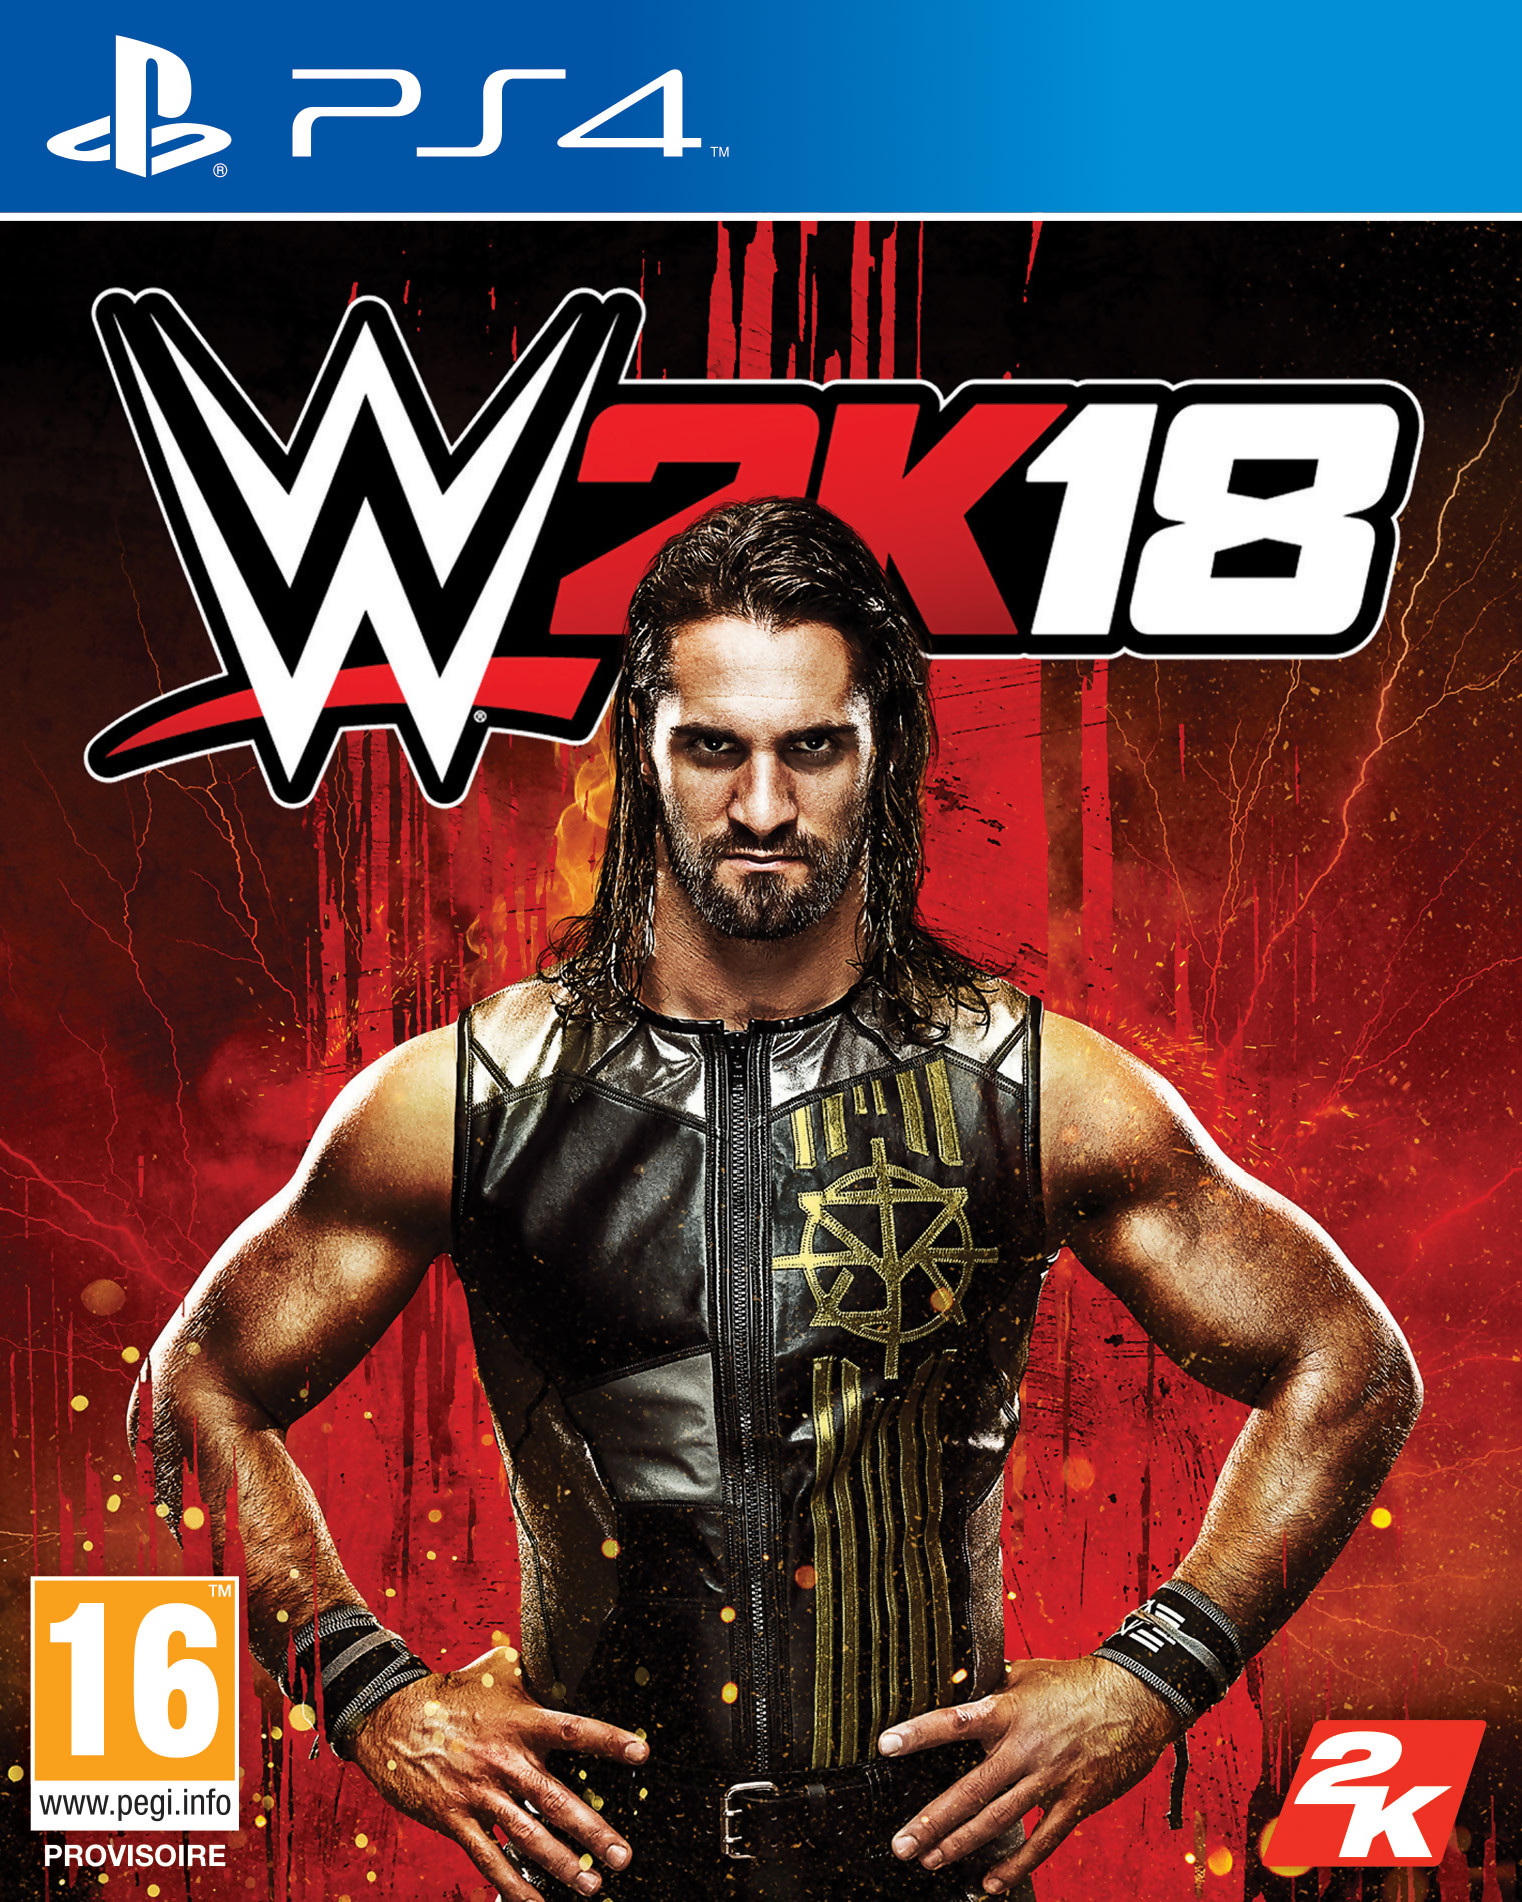 wwe 2k18 trailer date de sortie ditions deluxe et collector. Black Bedroom Furniture Sets. Home Design Ideas